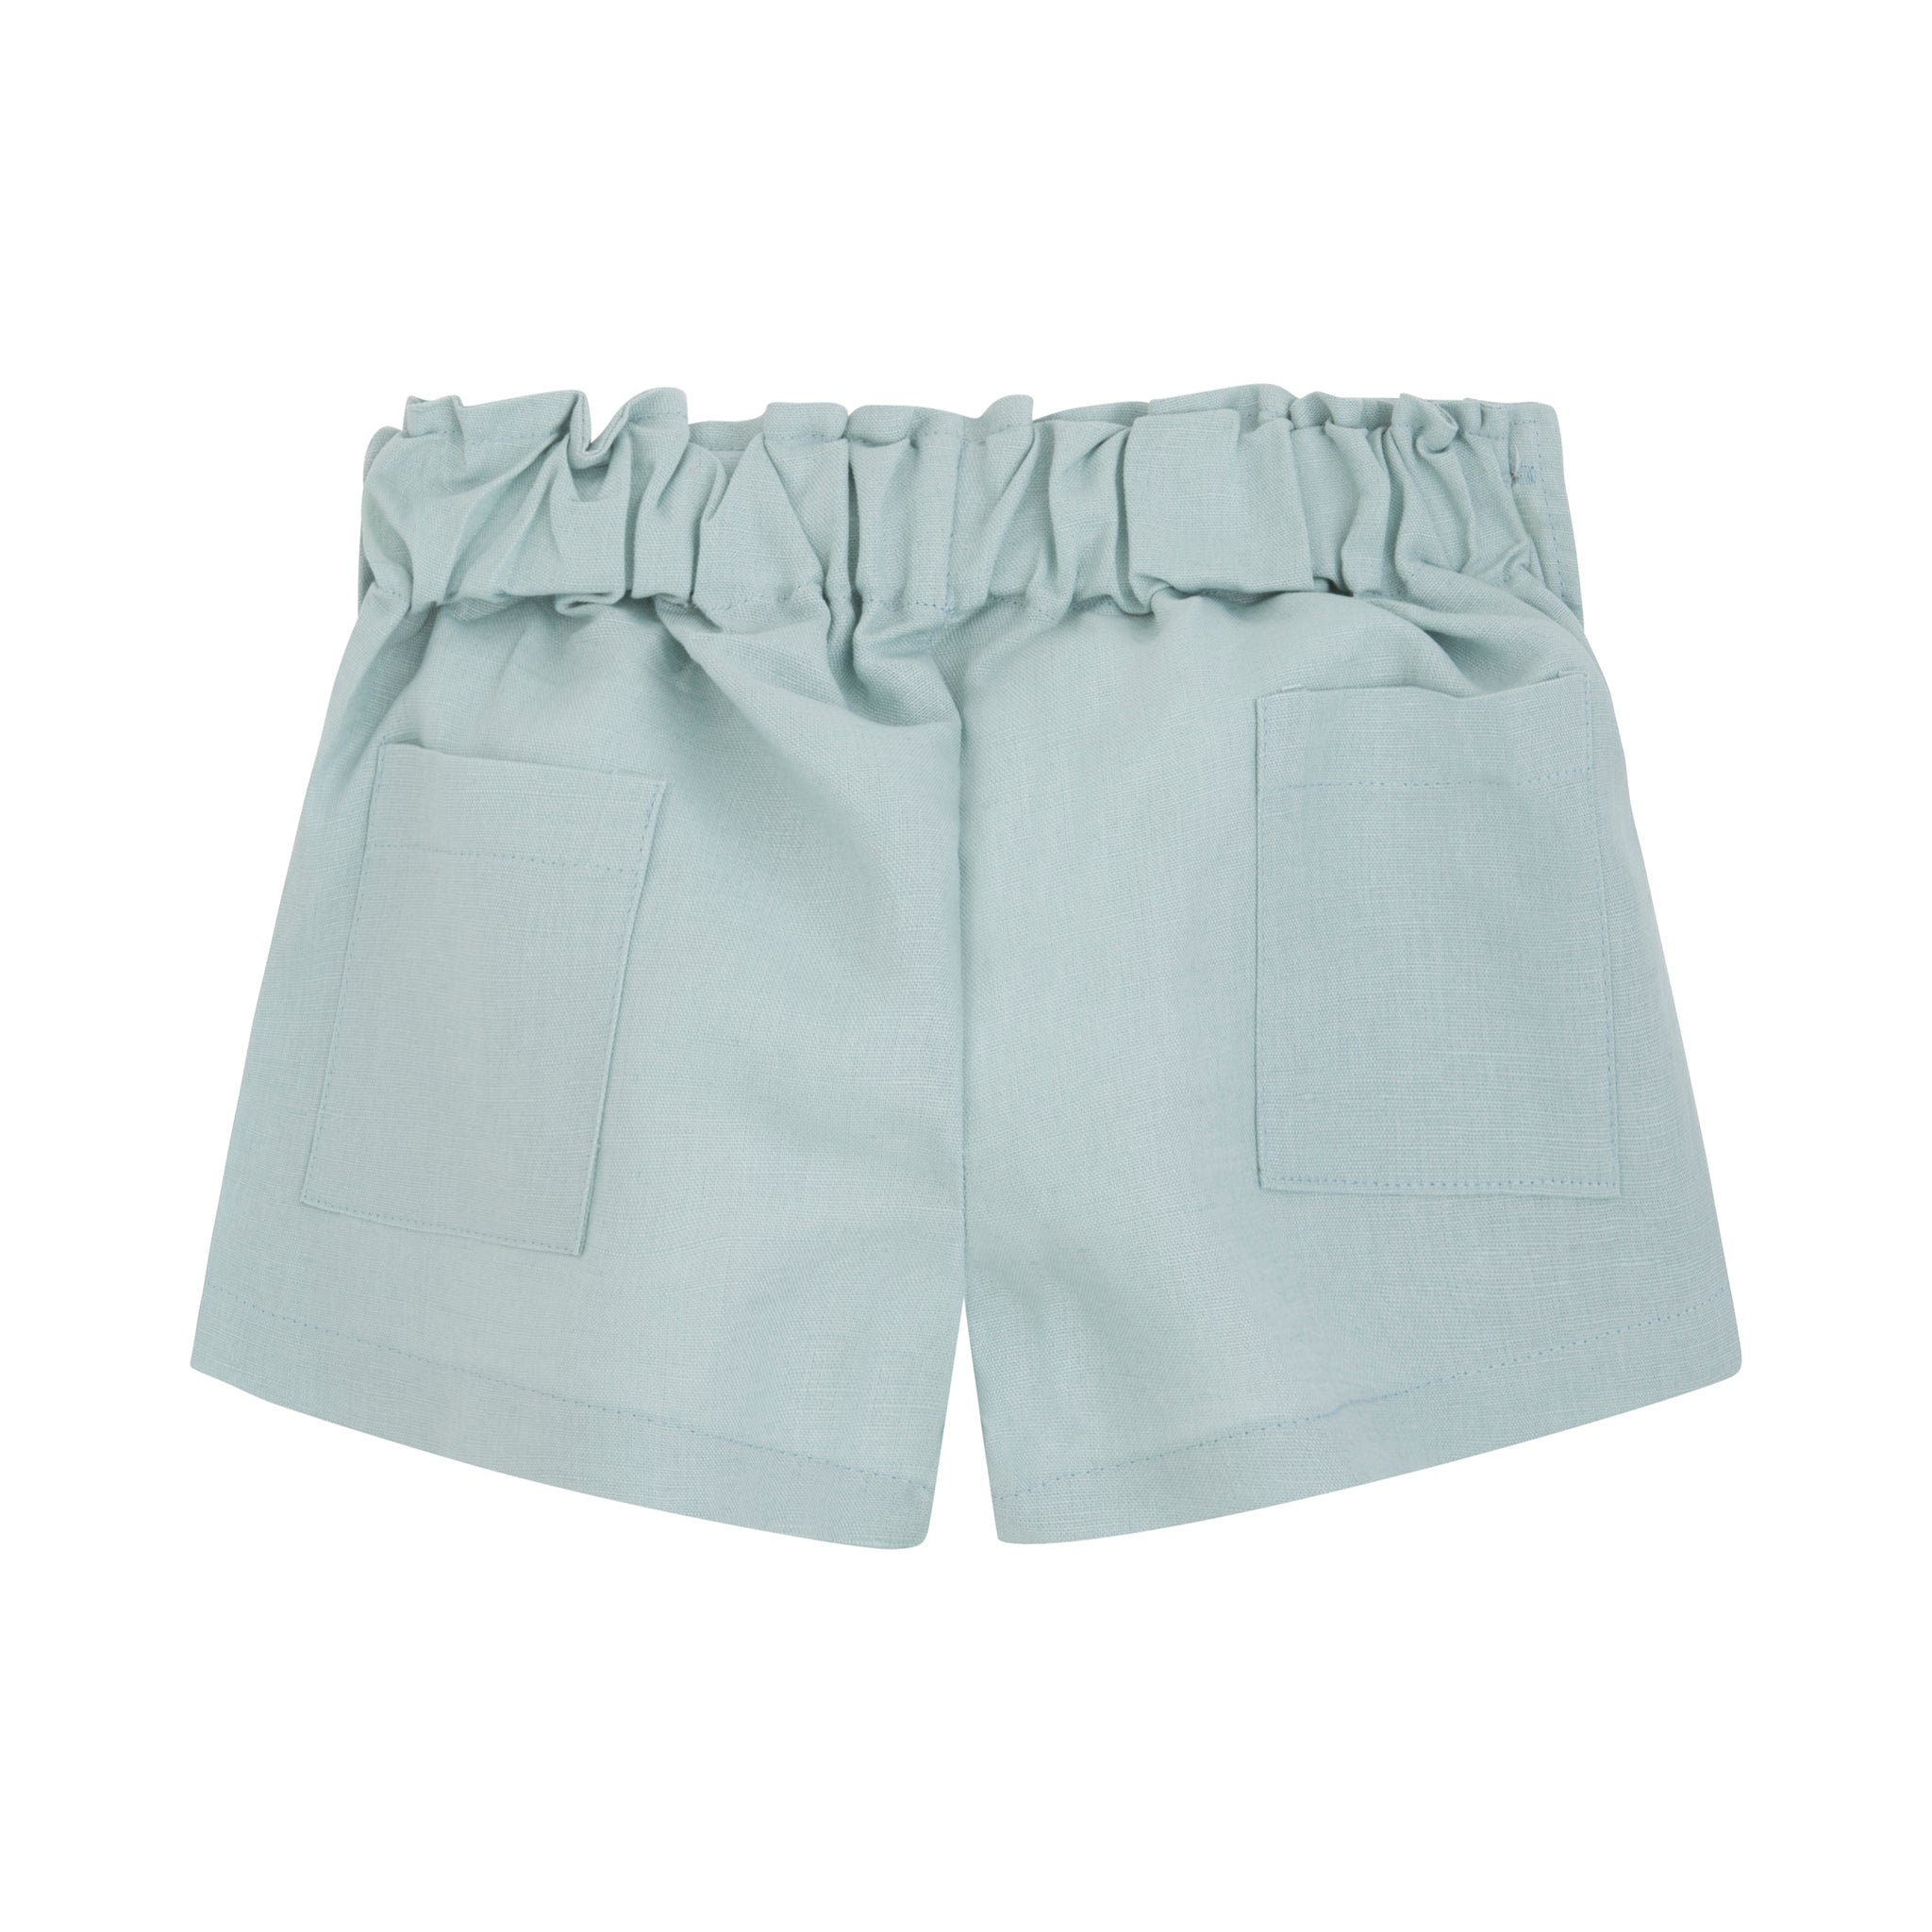 light green linen shorts with wooden side buttons, back pockets and elastic waist in back.